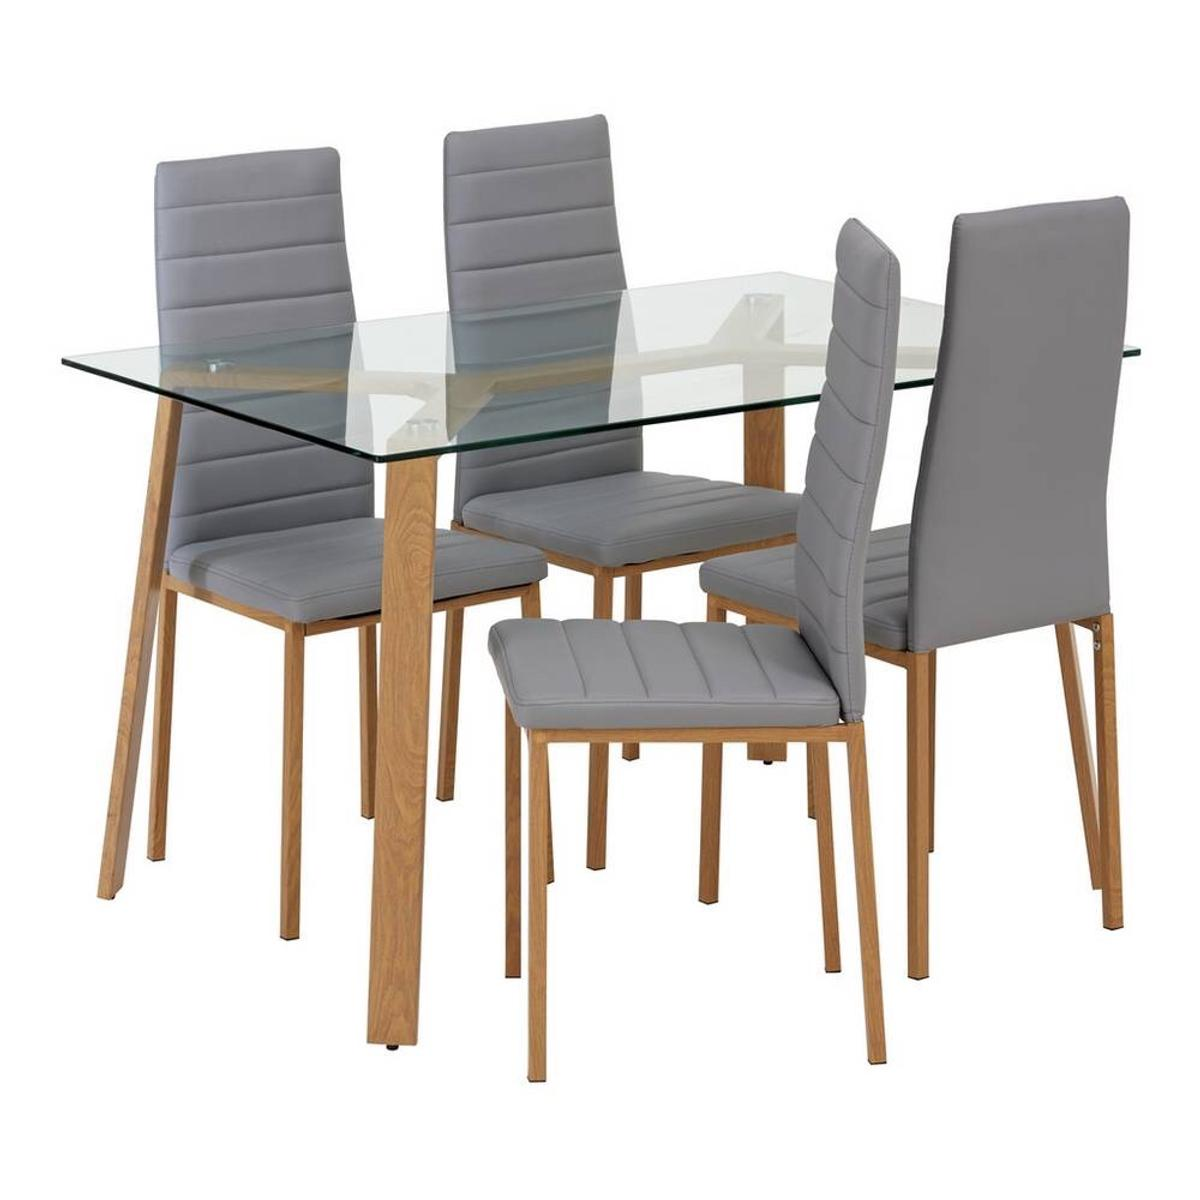 Helena Glass Table And 4 Chairs Grey In Cv2 Coventry For 120 00